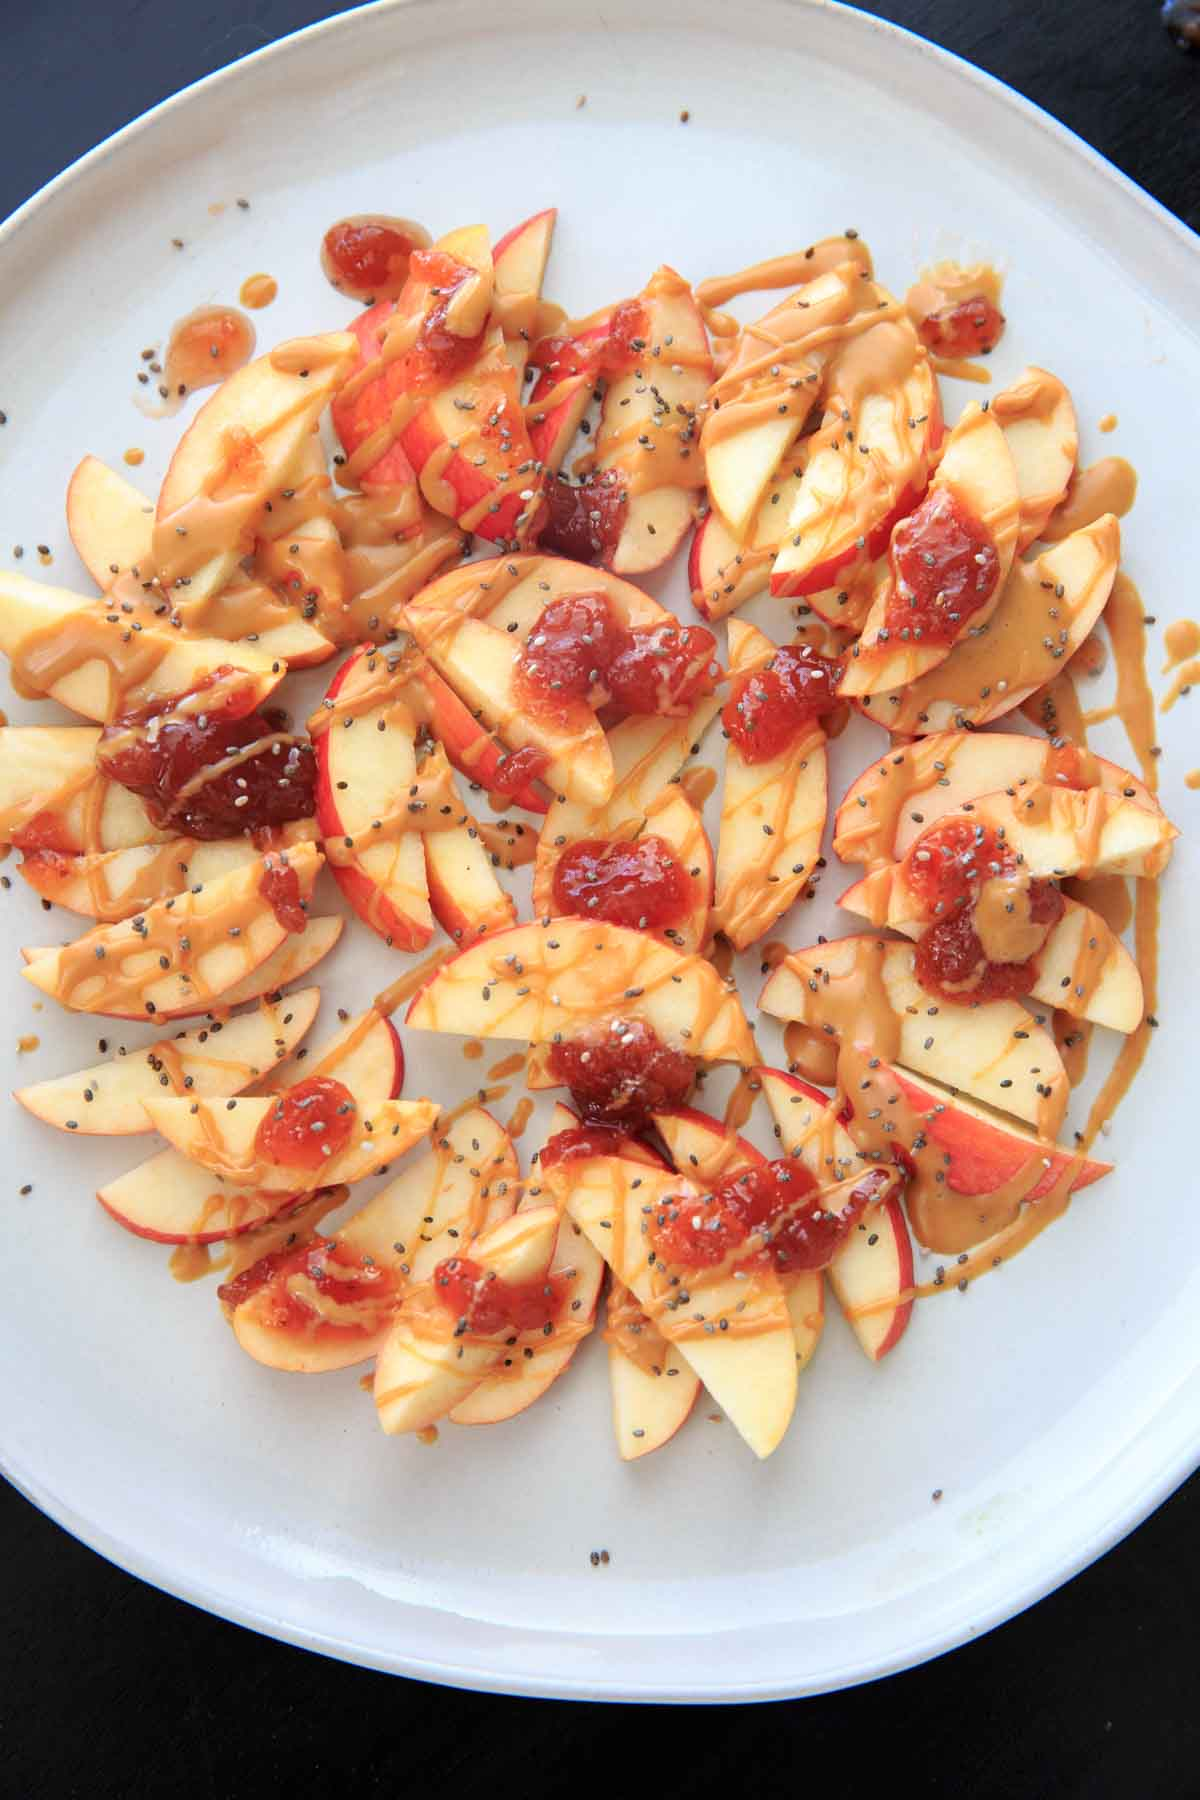 This peanut butter jelly apple nachos recipe is the perfect quick and healthy snack for kids and adults alike! Vegan, gluten-free, protein-packed and delicious.